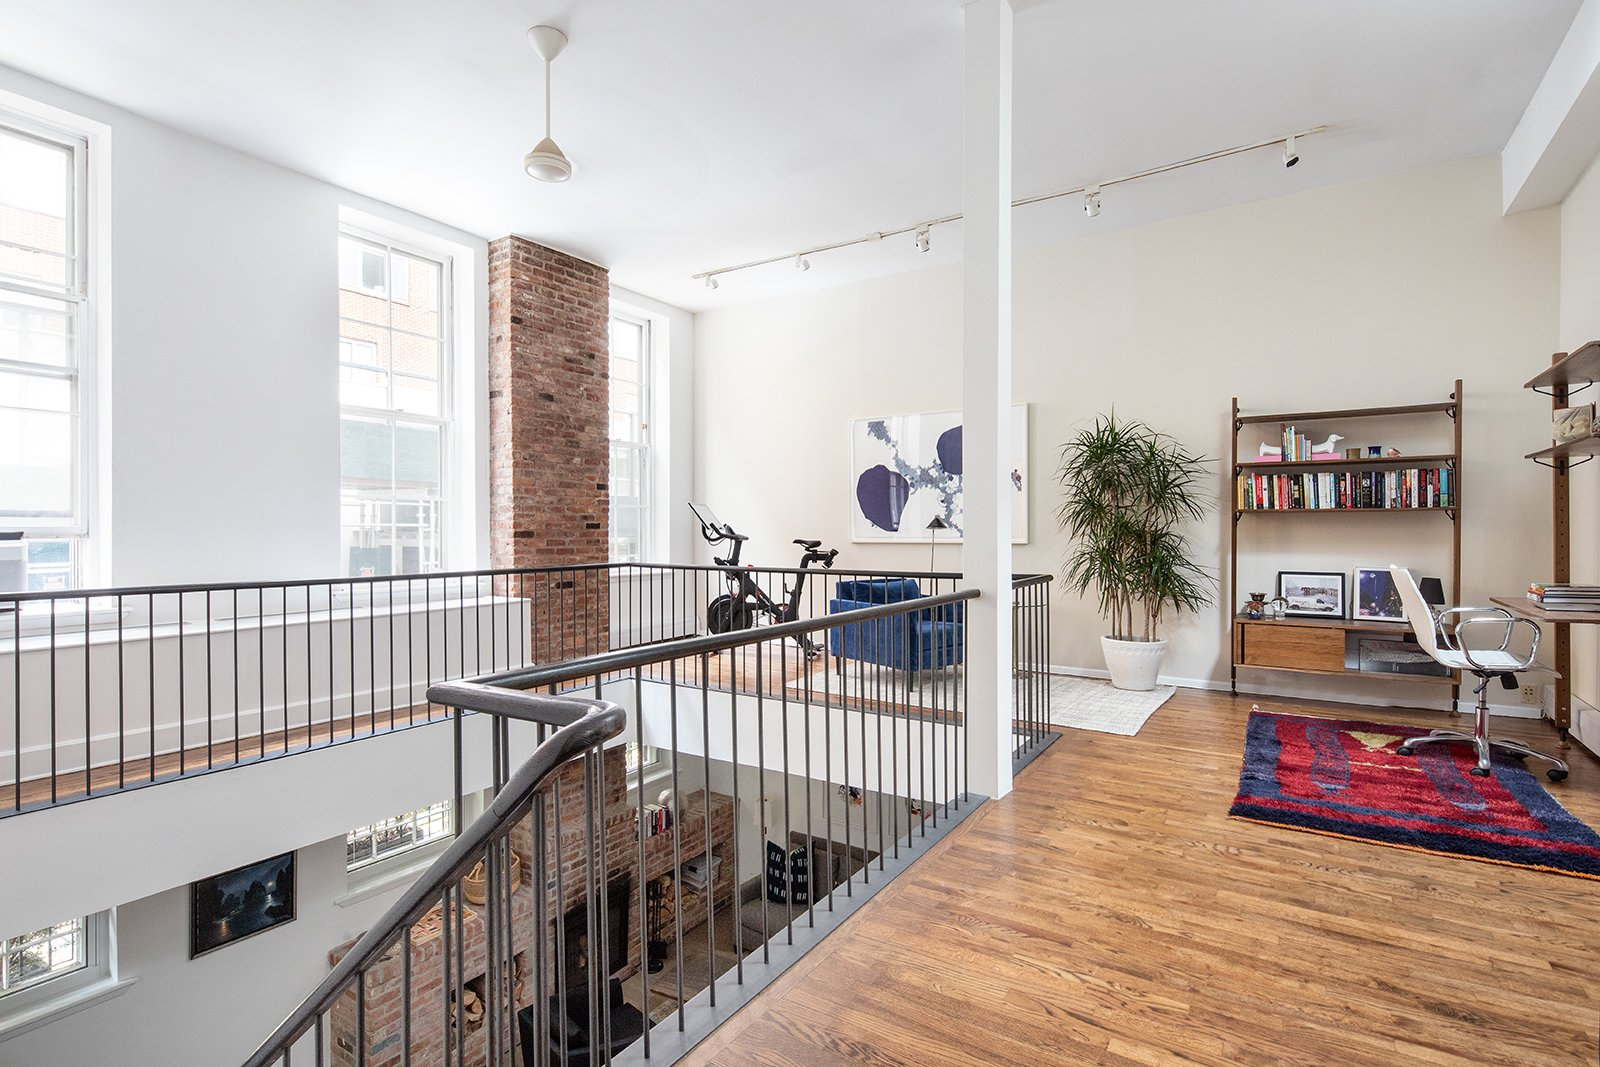 Office, Medium Hardwood, Chair, Study, Library, and Desk The wraparound mezzanine has a massive skylight. This space could be used for a variety of purposes, including being converted into a fourth bedroom.    Best Office Medium Hardwood Desk Photos from An Updated 1845 Brooklyn Home Hits the Market at $2.95M